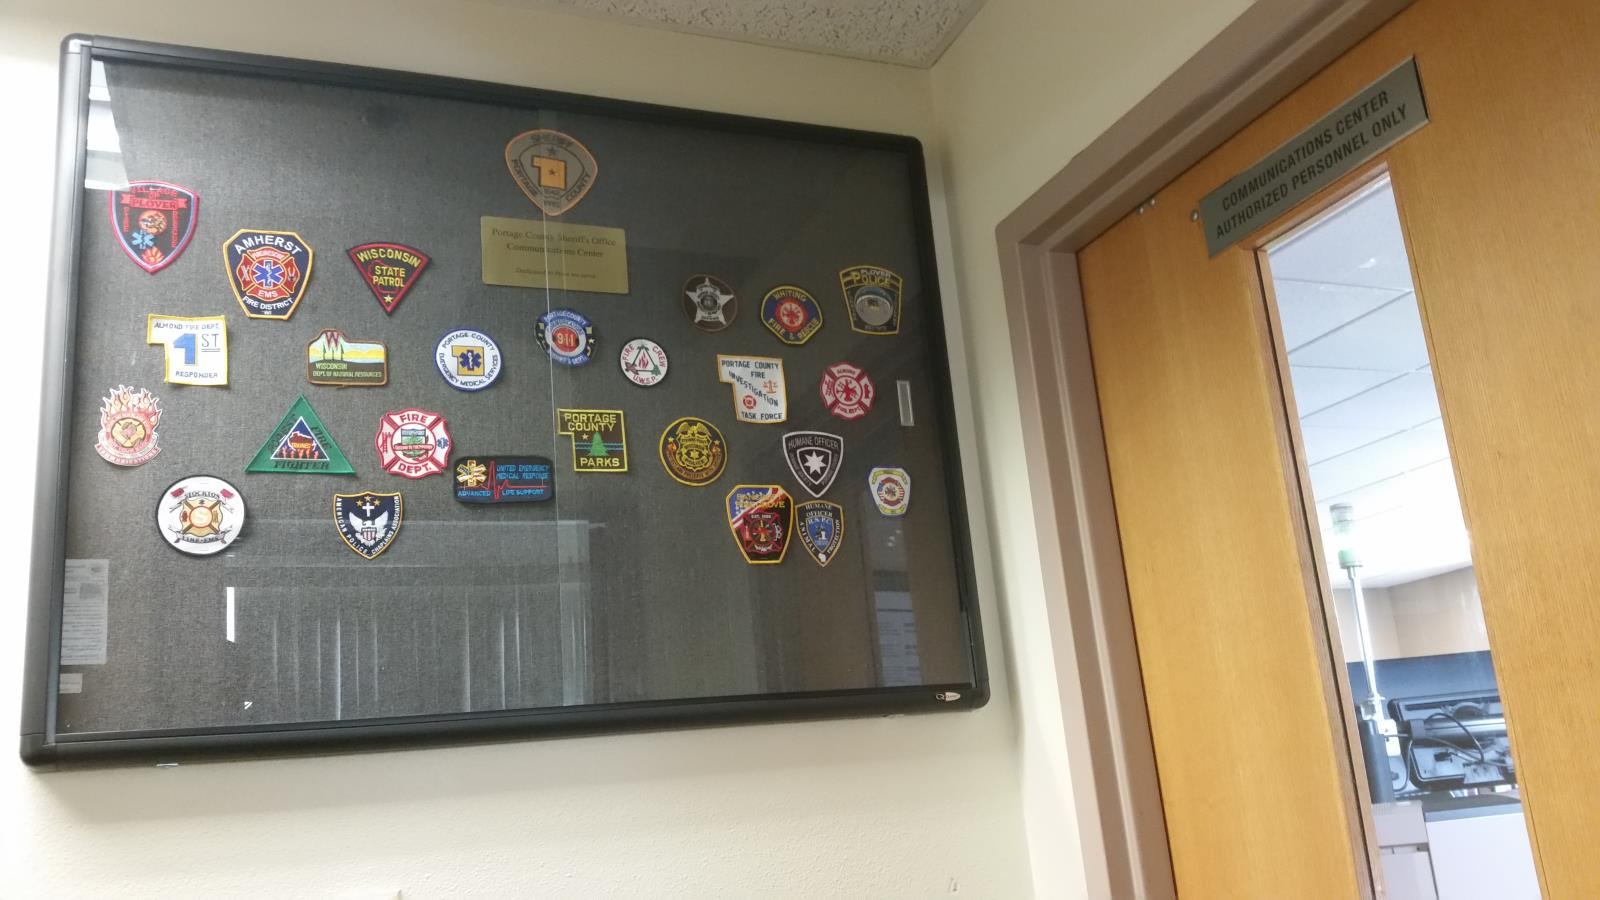 Communications Center Board